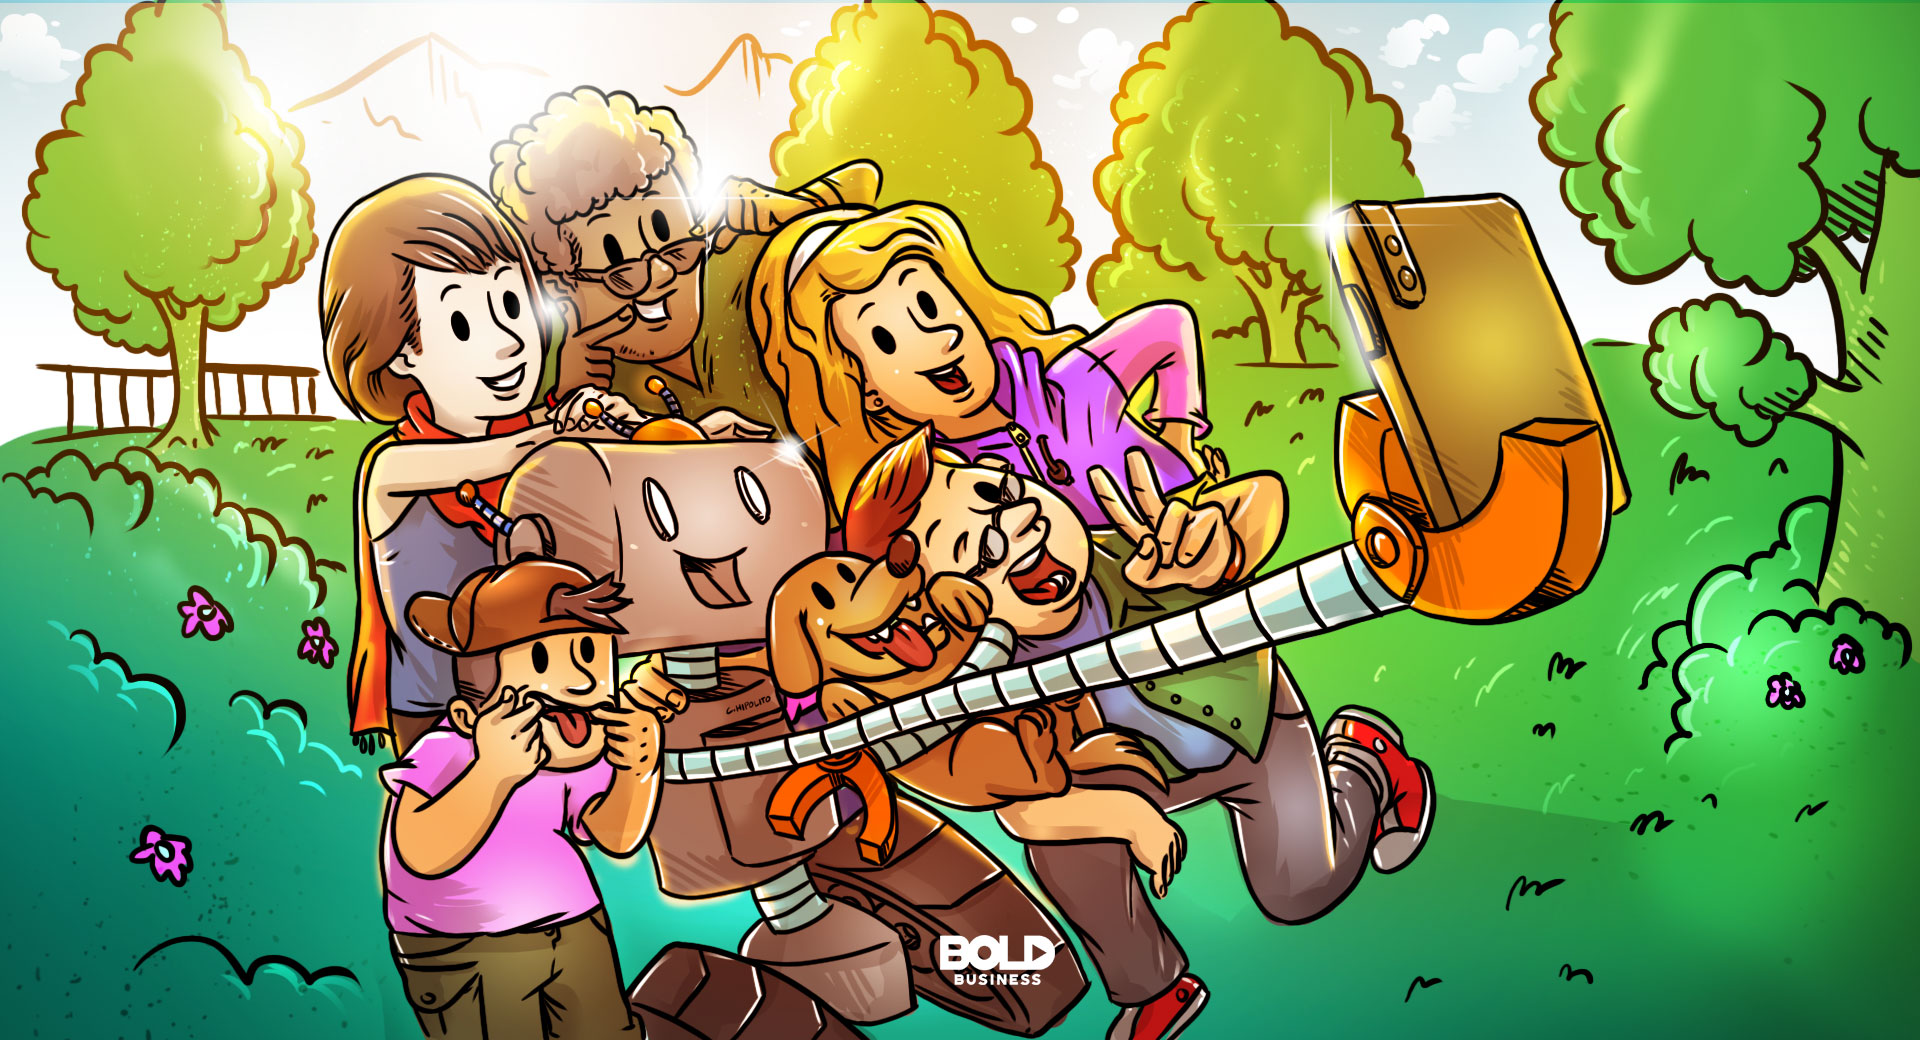 cartoon of five humans and a dog taking a selfie with an AI robot, depicting a future where humans have robots as friends